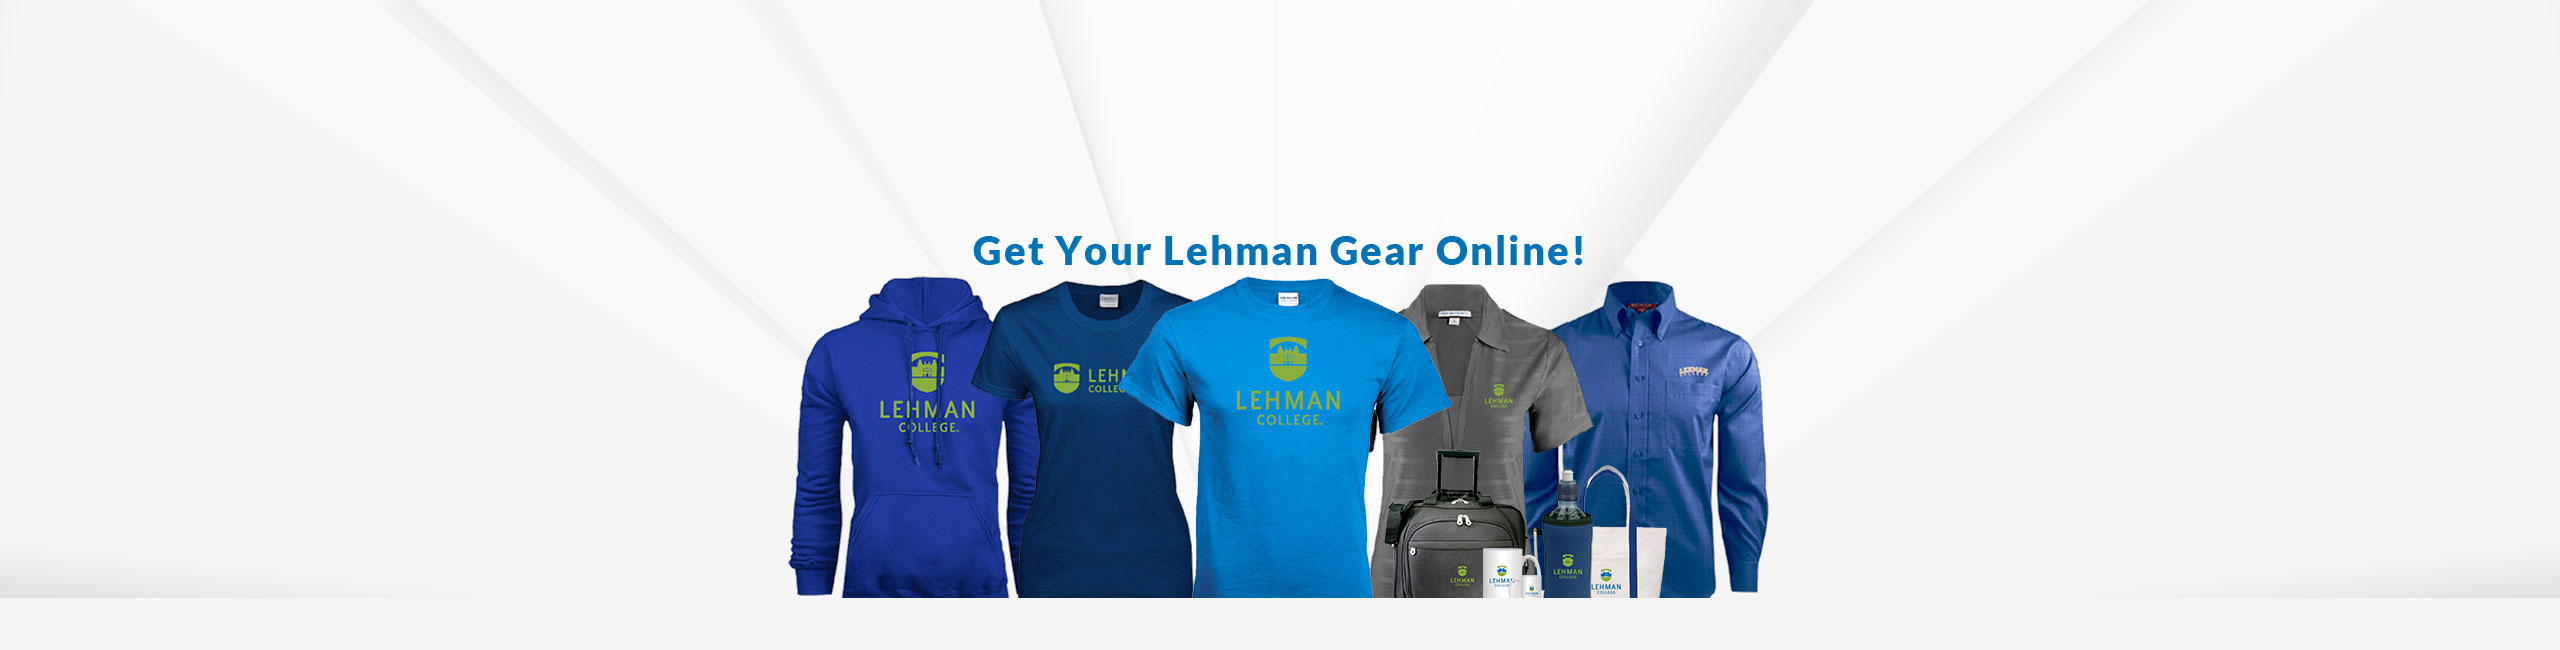 Get Your Lehman Gear Online